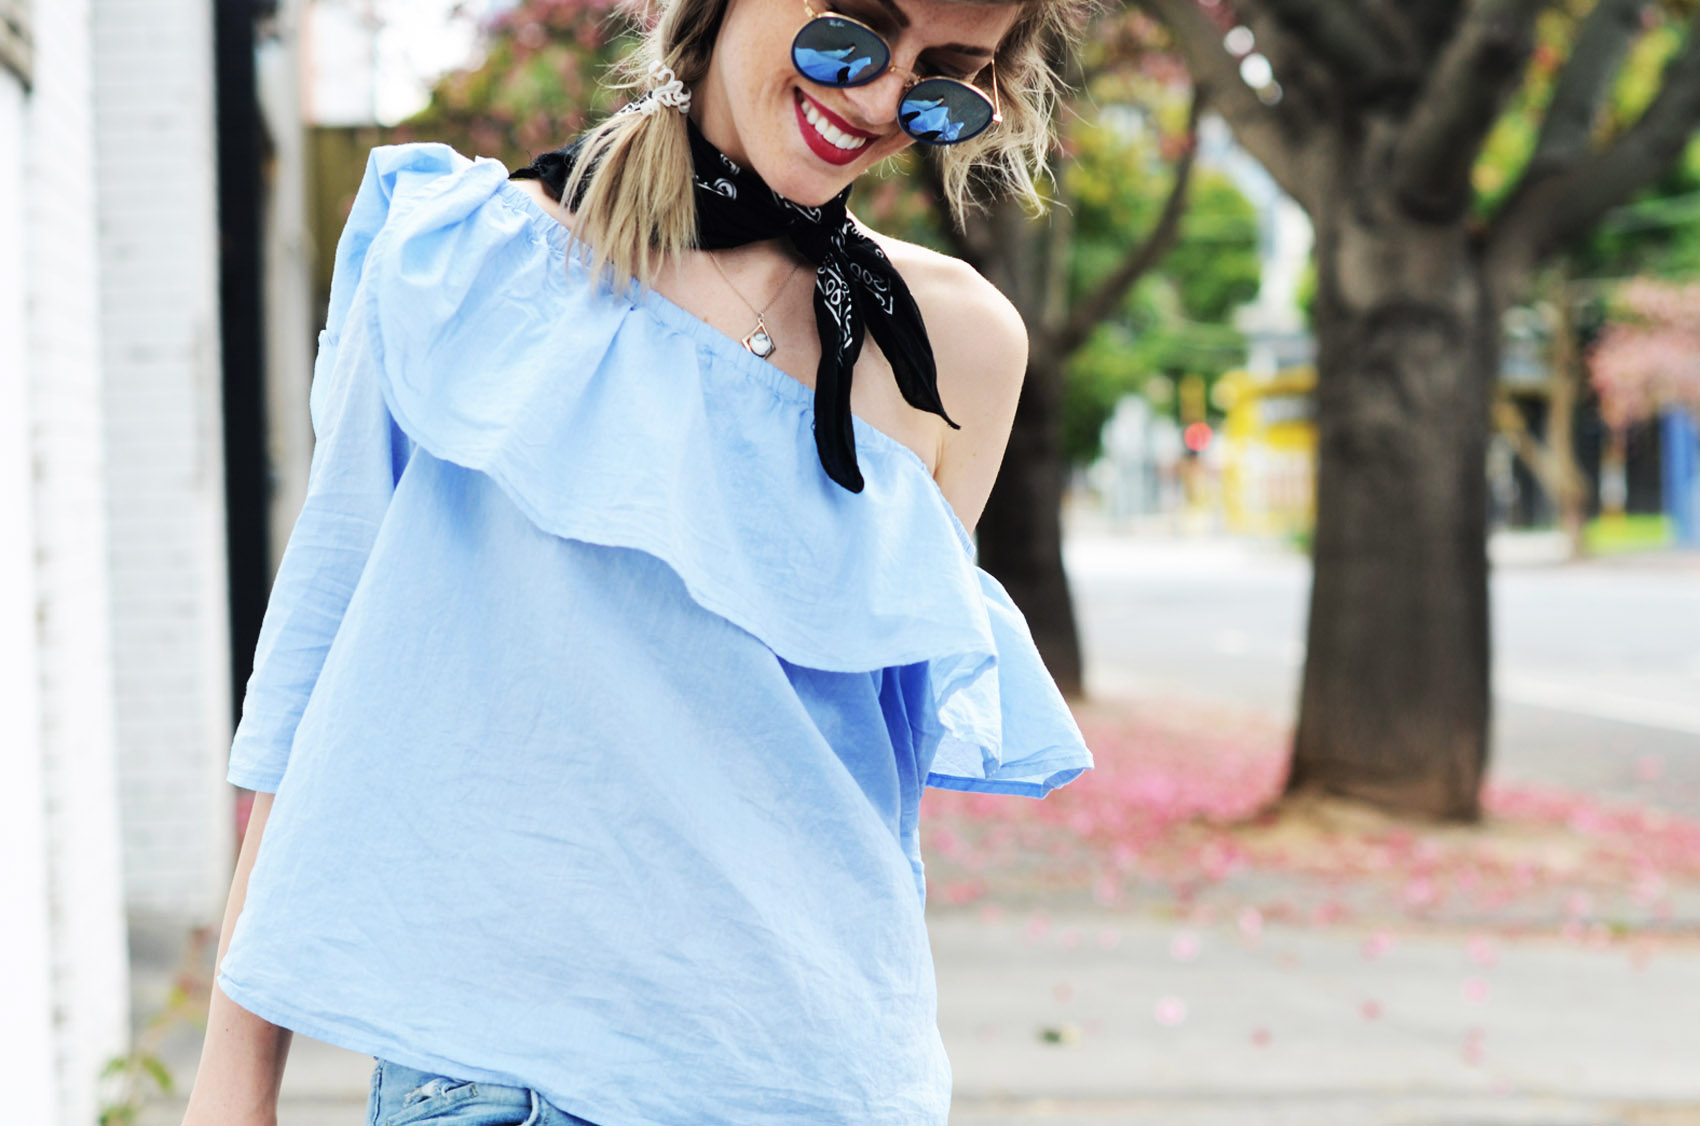 off-shoulder-shirt-melbourne-06